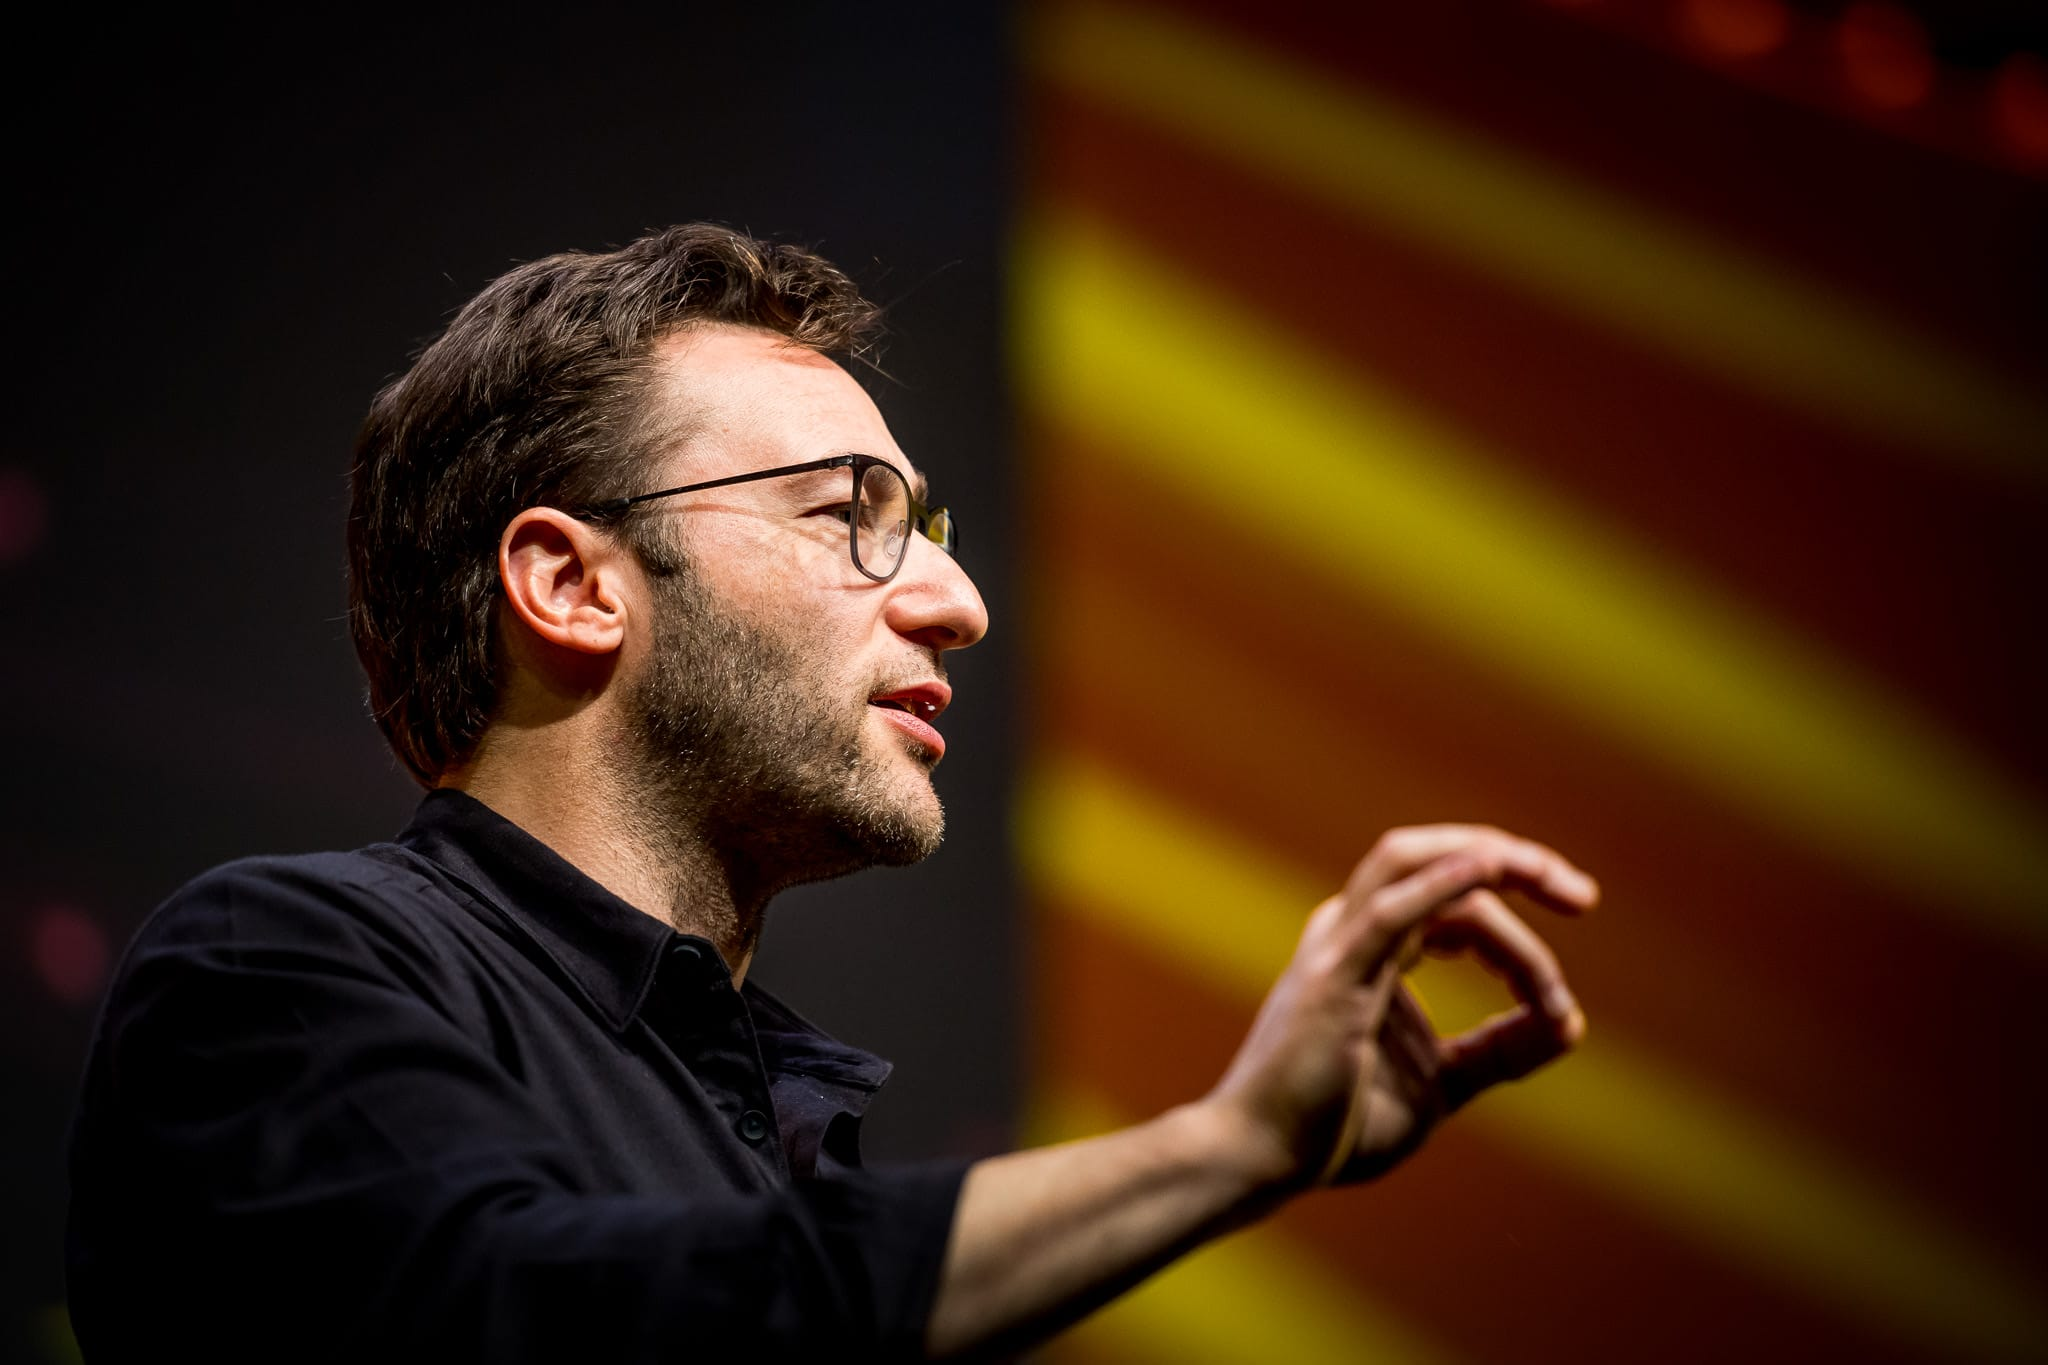 Simon Sinek Photo speaking at a Corporate Event